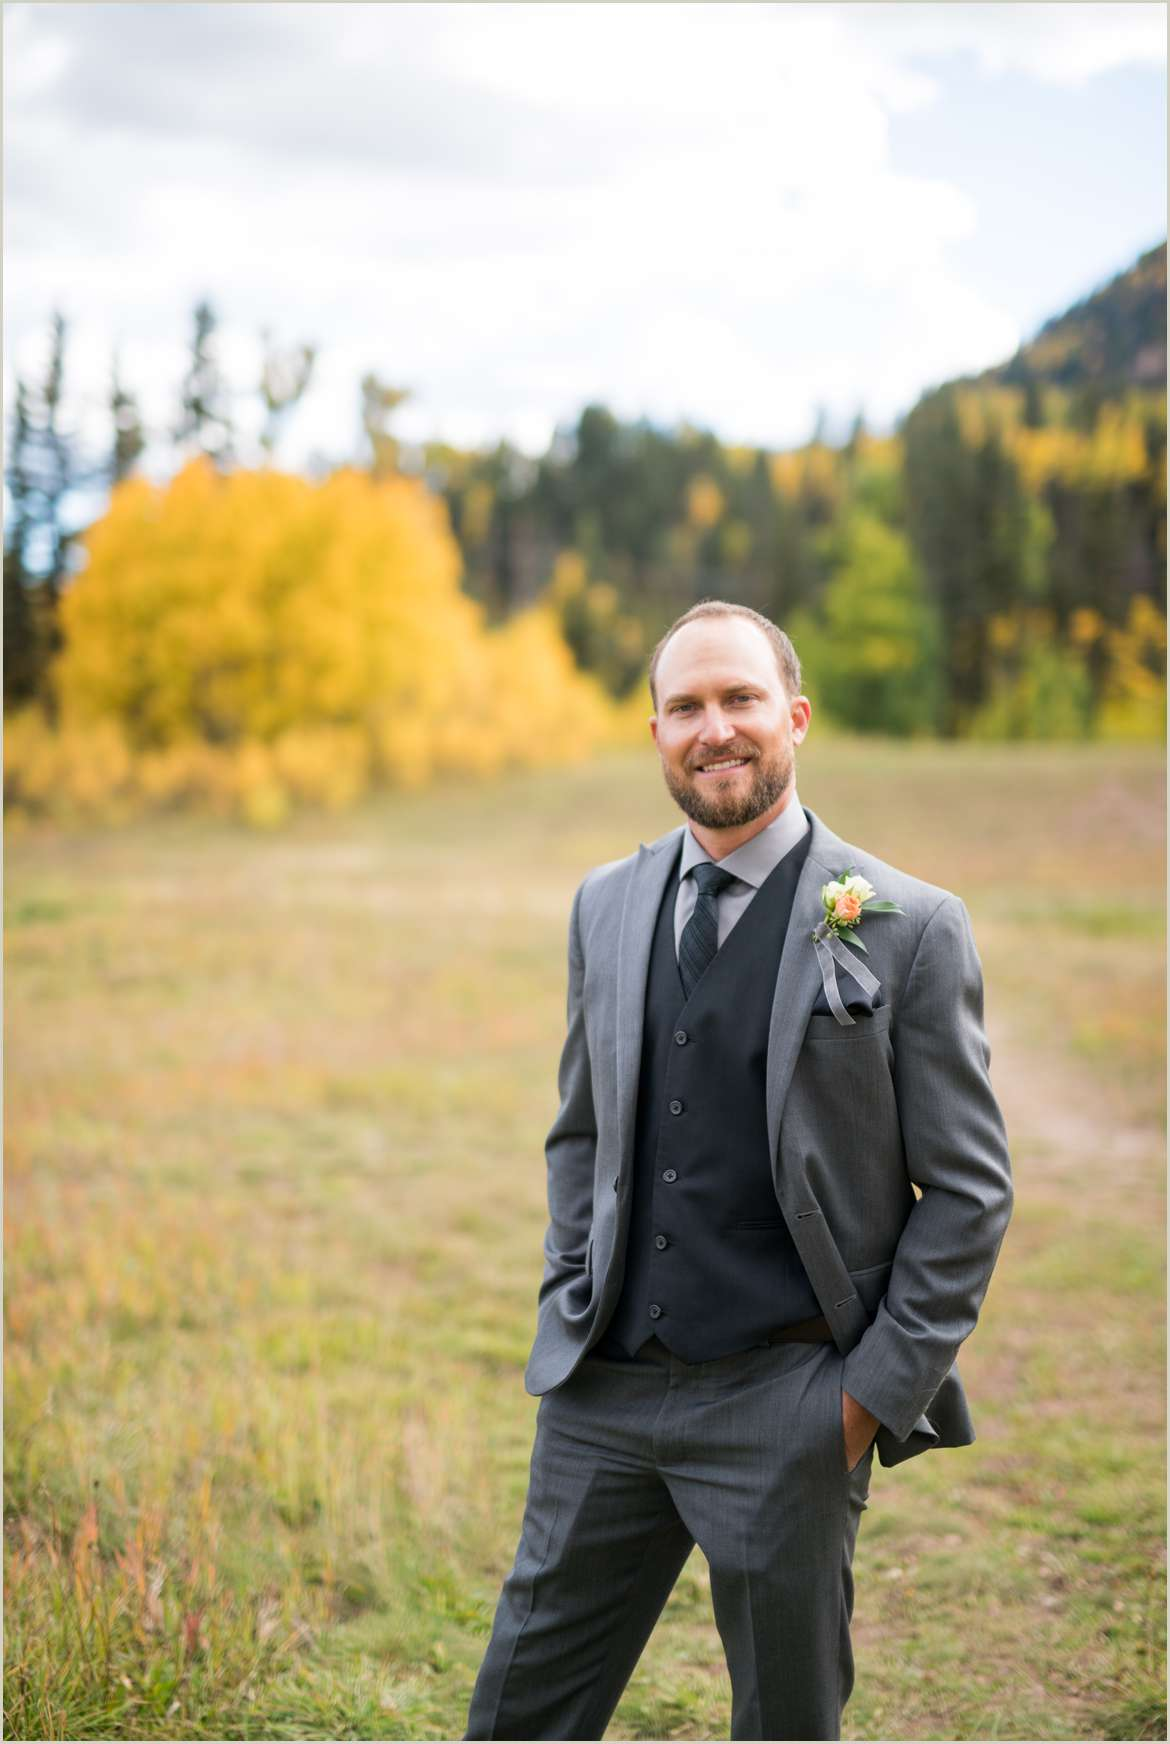 groom wearing grey suit